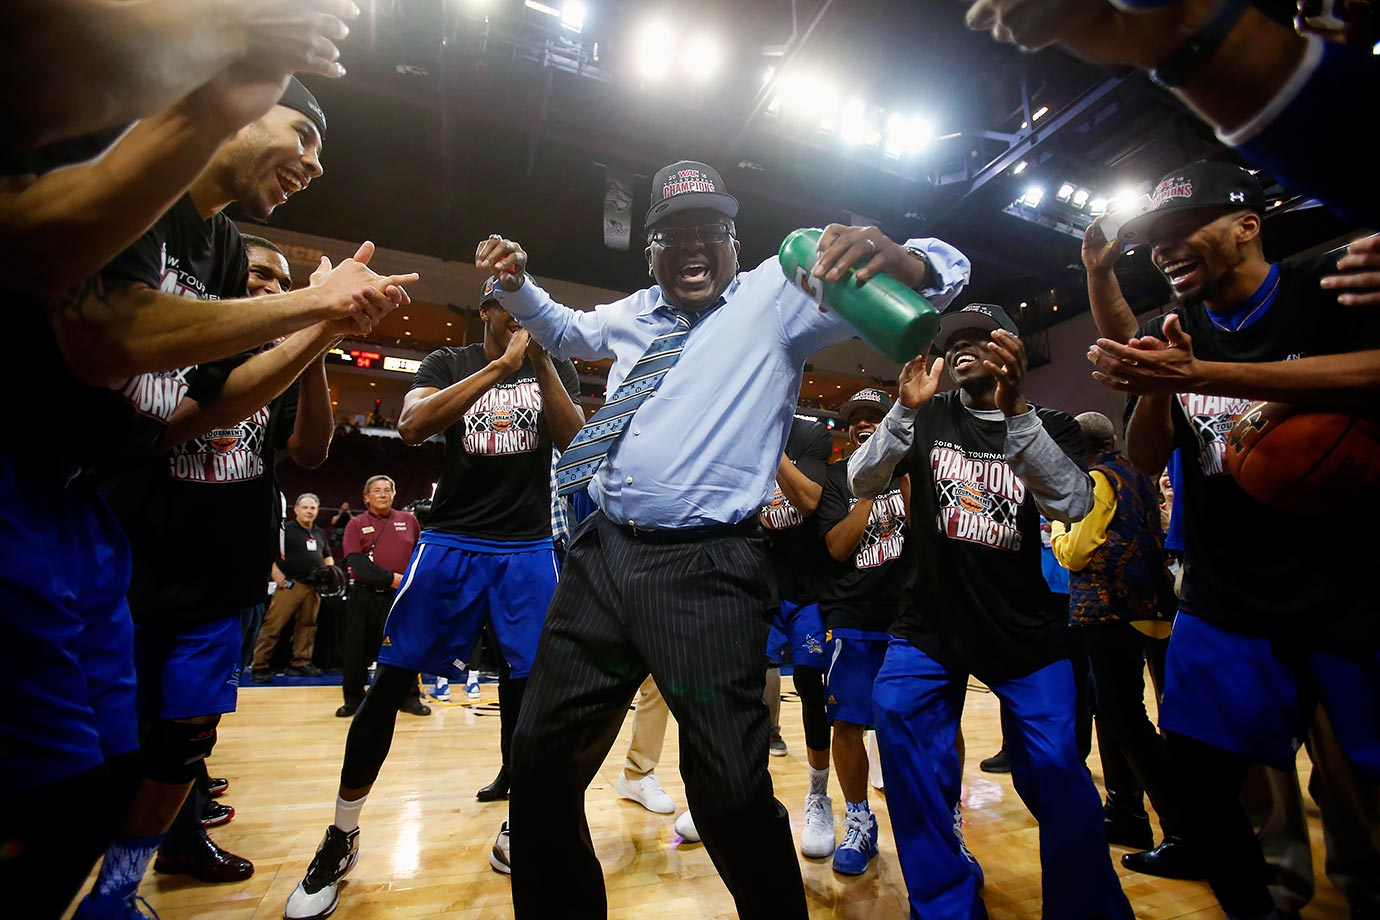 Cal State Bakersfield coach Rod Barnes dances while surrounded by his team following their WAC Tournament victory over New Mexico State in Las Vegas.